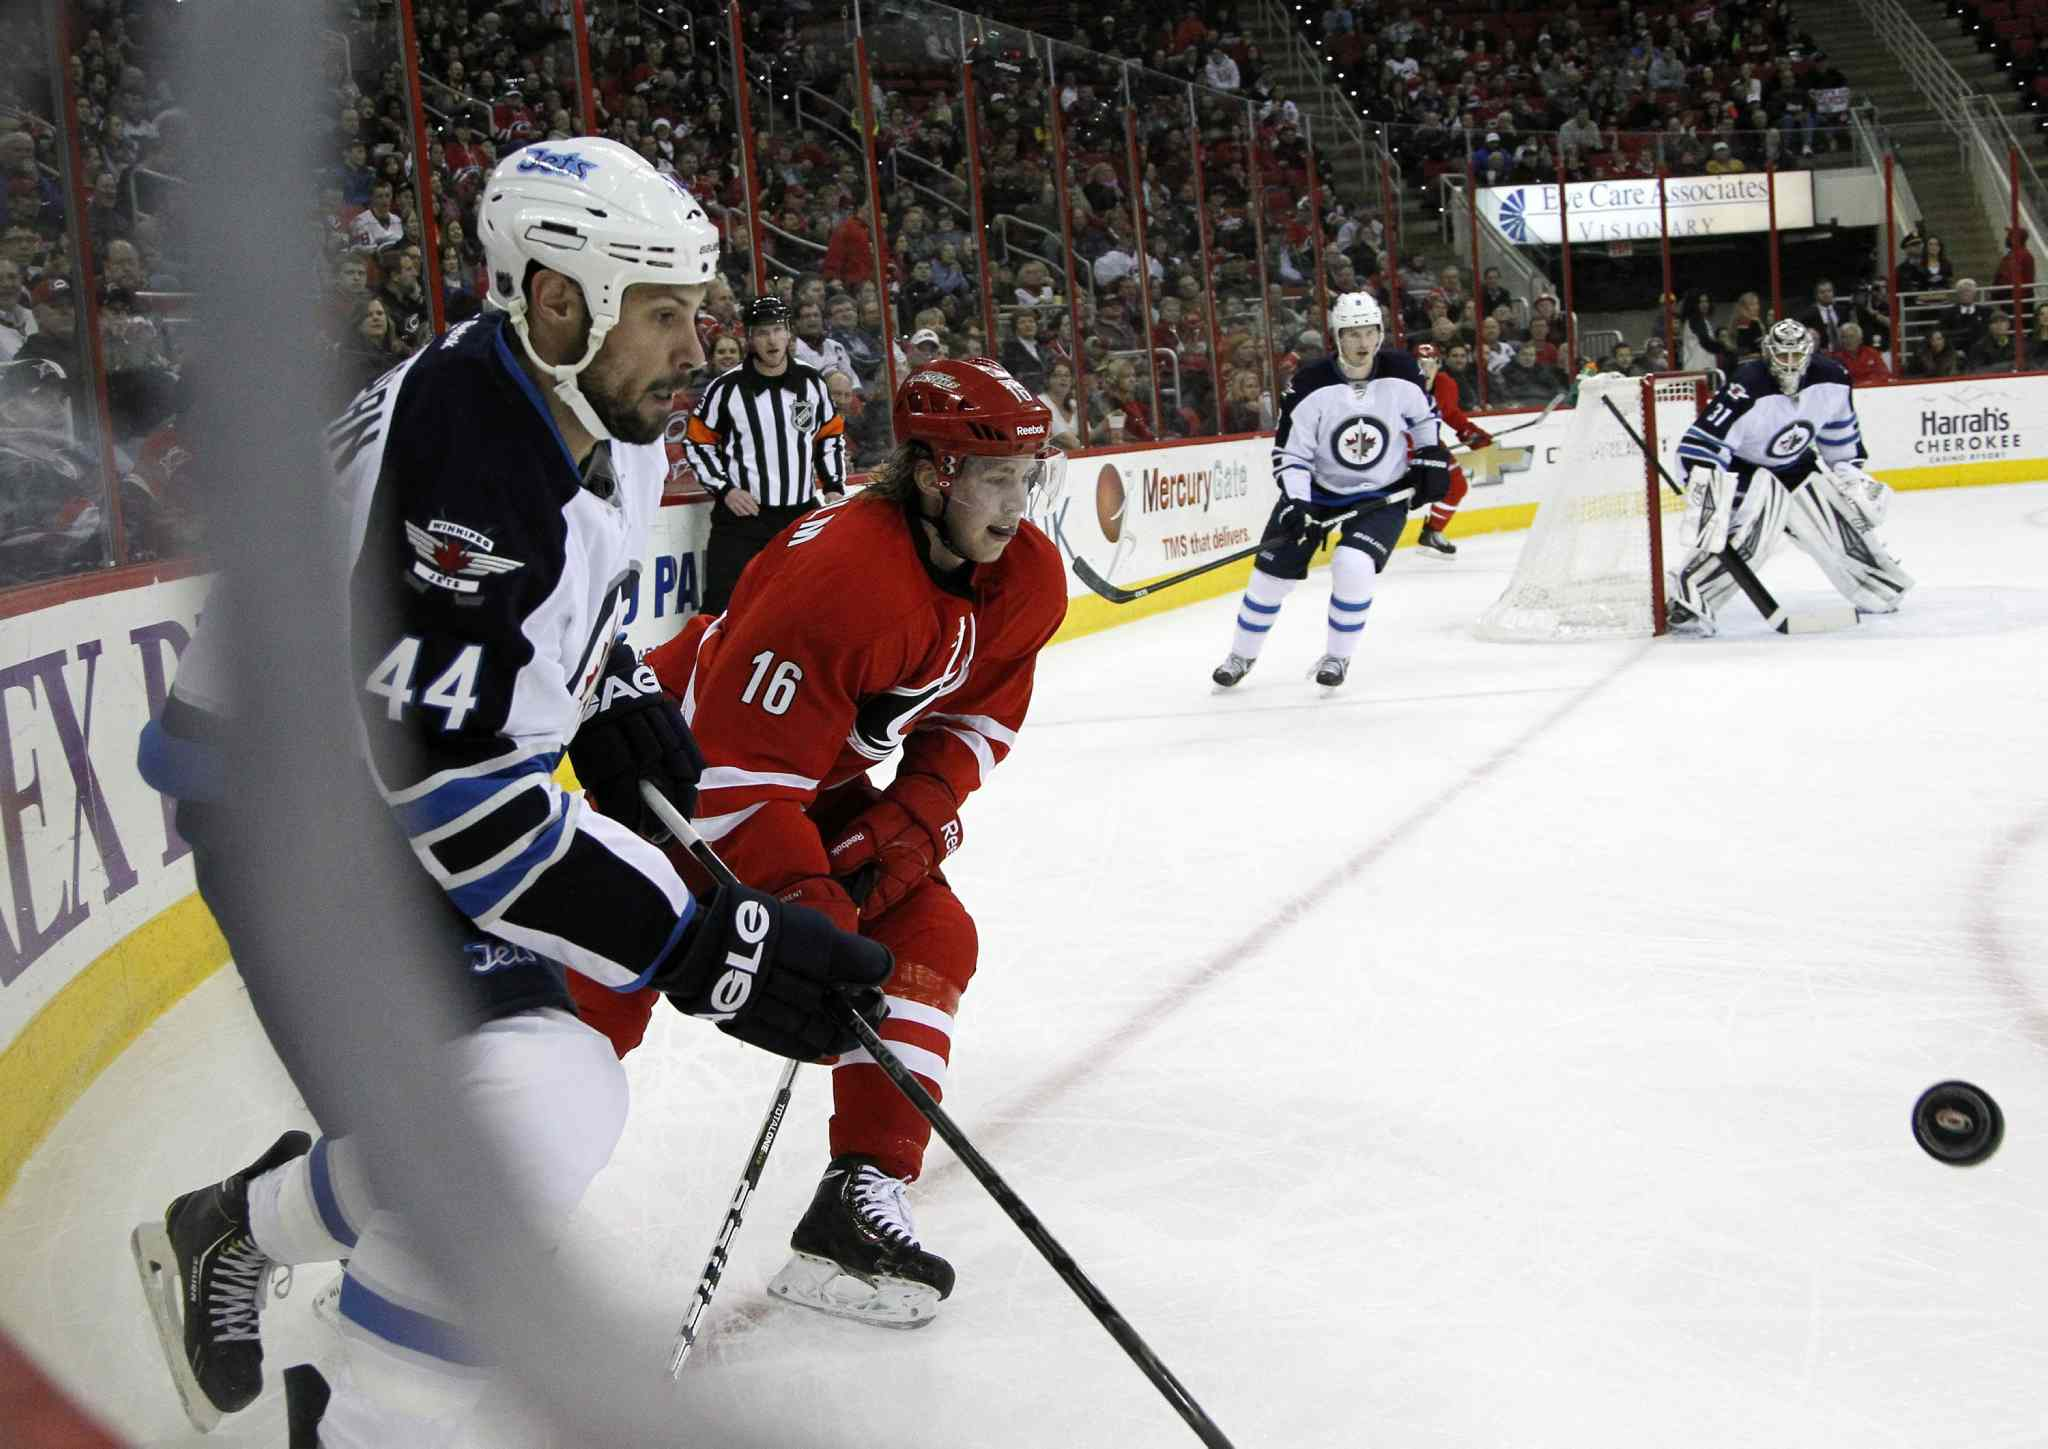 Winnipeg Jets' Zach Bogosian (44) and Carolina Hurricanes' Elias Lindholm (16) go for the puck during the first period at the PNC Arena in Raleigh, N.C., on Tuesday.